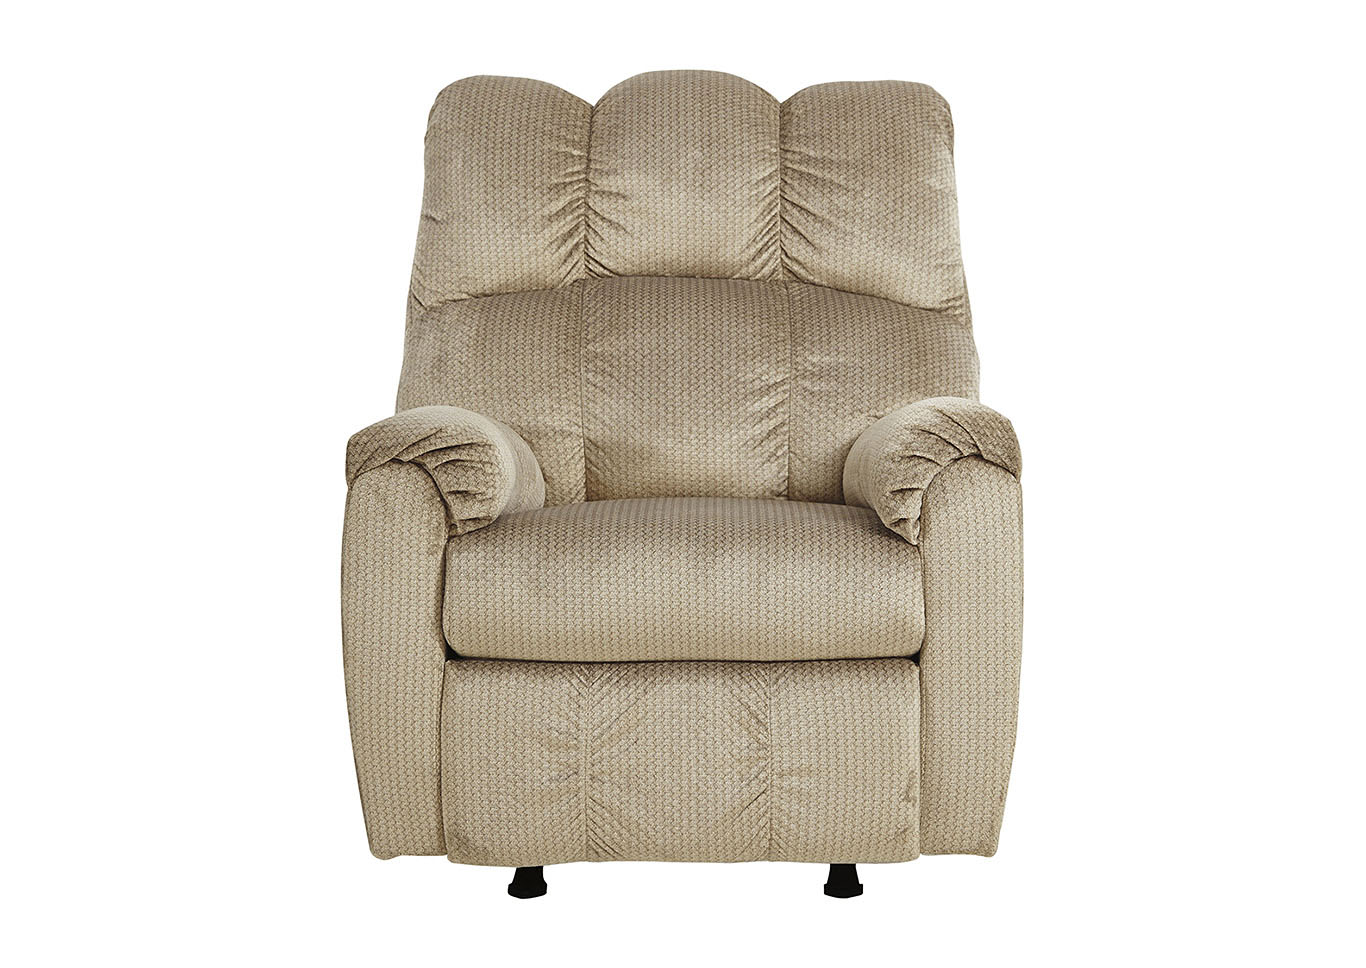 Foxfield Stone Rocker Recliner,Signature Design By Ashley